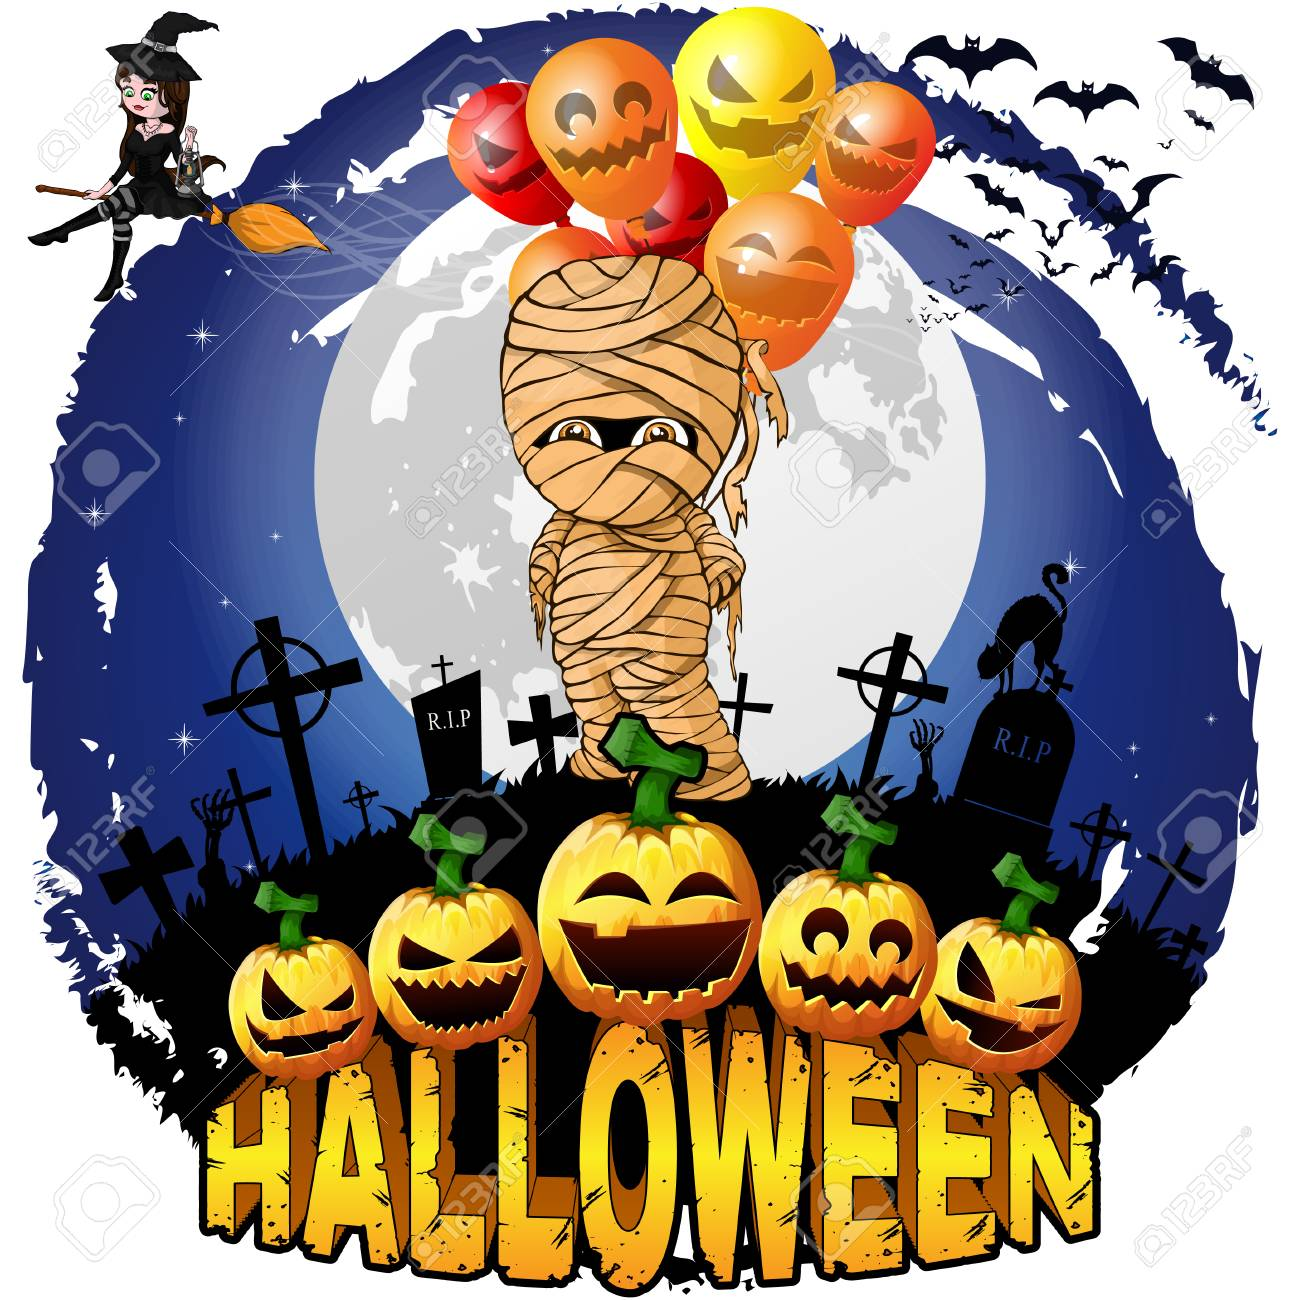 Halloween Design Template With Mummy With Balloons Vector